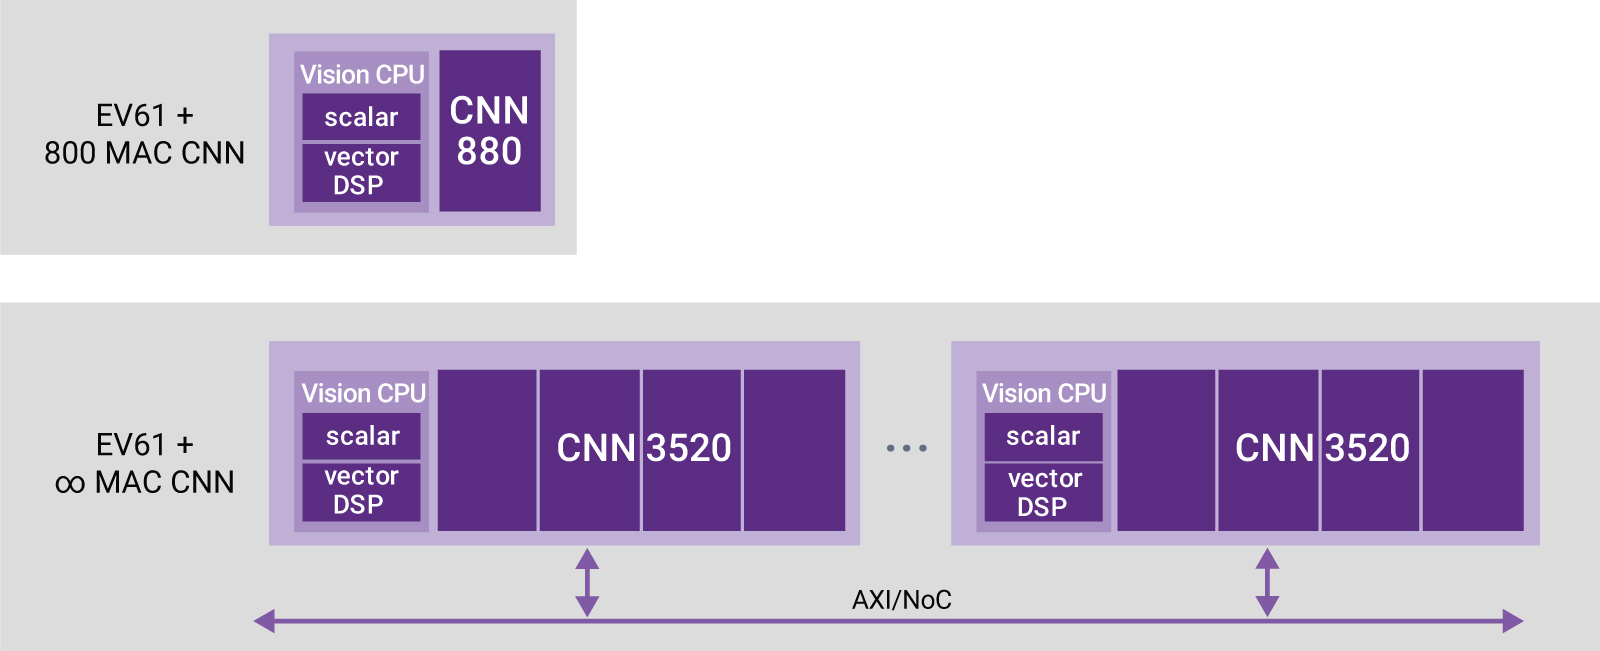 Figure 6: DesignWare EV6x processors can implement one 880 CNN engine for smaller designs, up to greater CNN performance along an AXI bus. The DesignWare EV6x processors are currently deployed in low-power, high-performance including automotive designs.